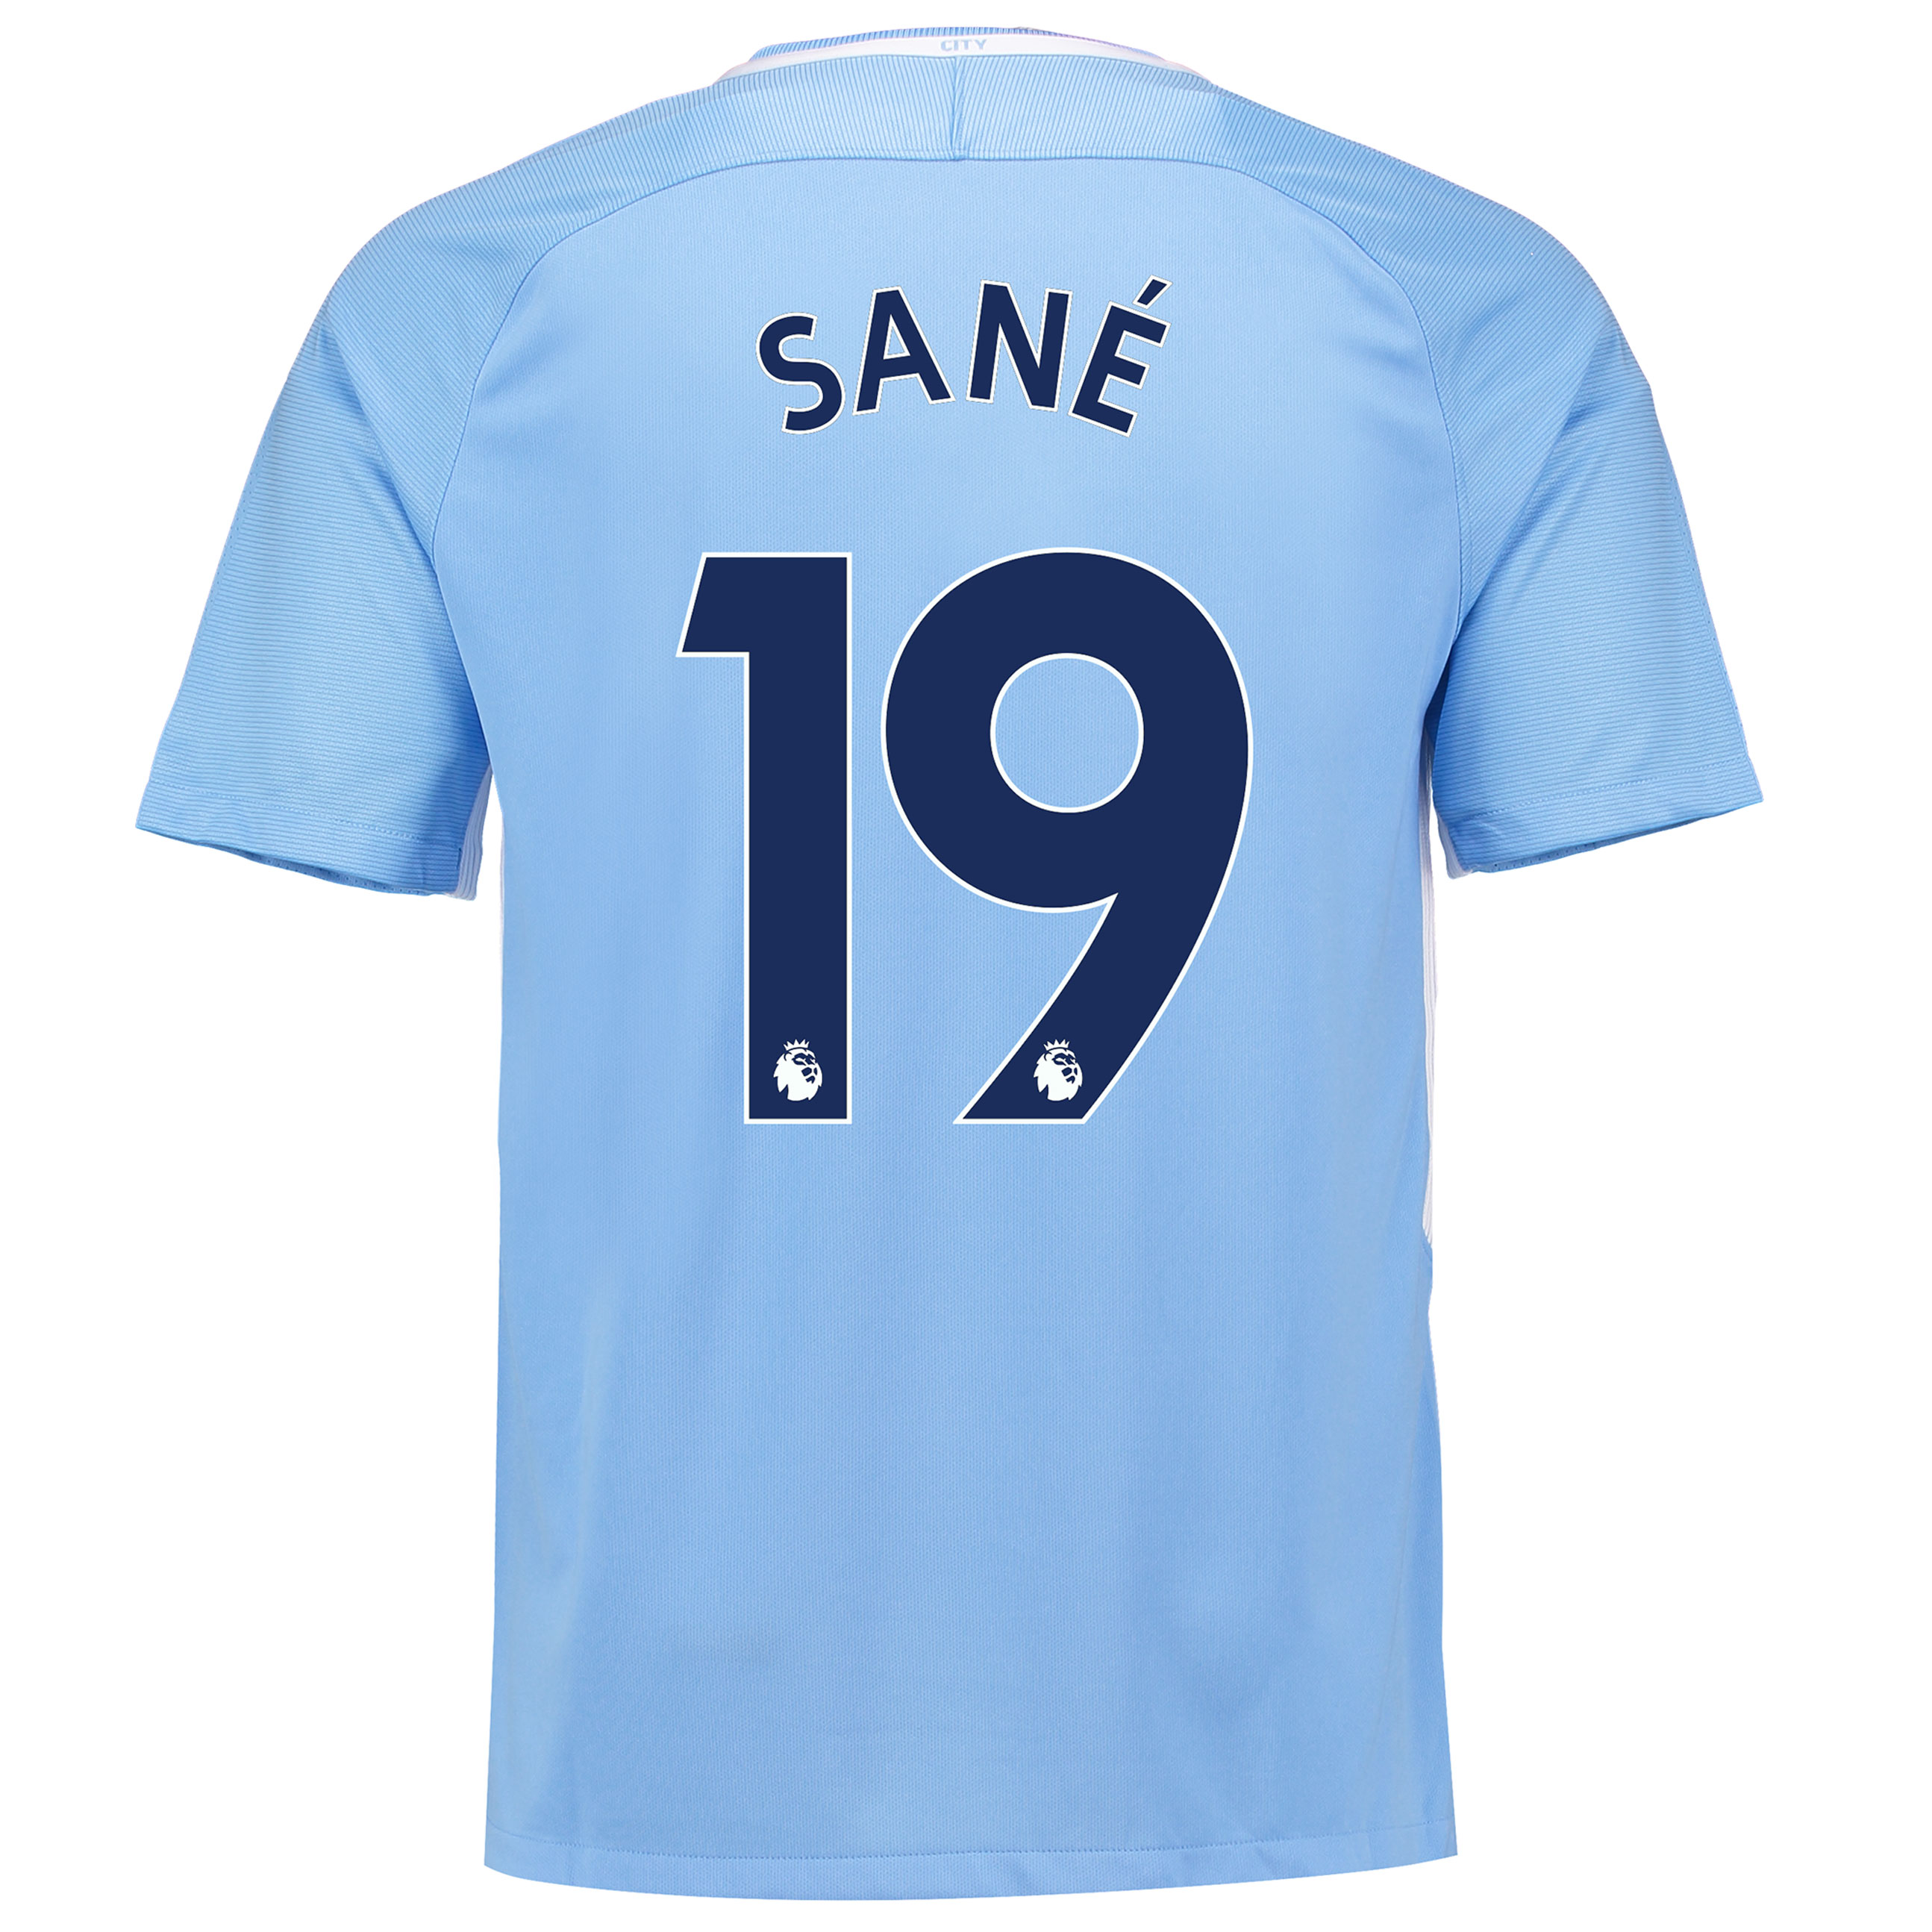 Manchester City Home Stadium Shirt 2017-18 with San?® 19 printing